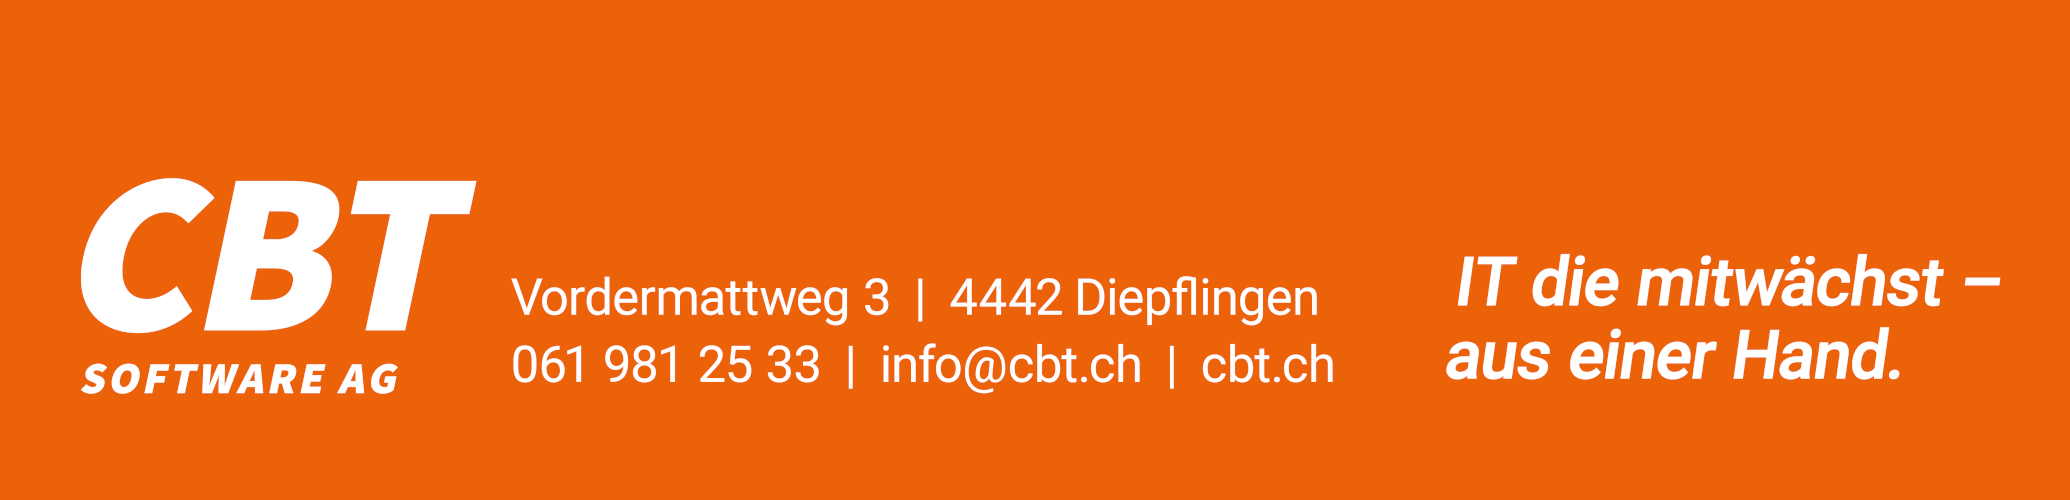 Filmsponsor 2020: CBT Software AG